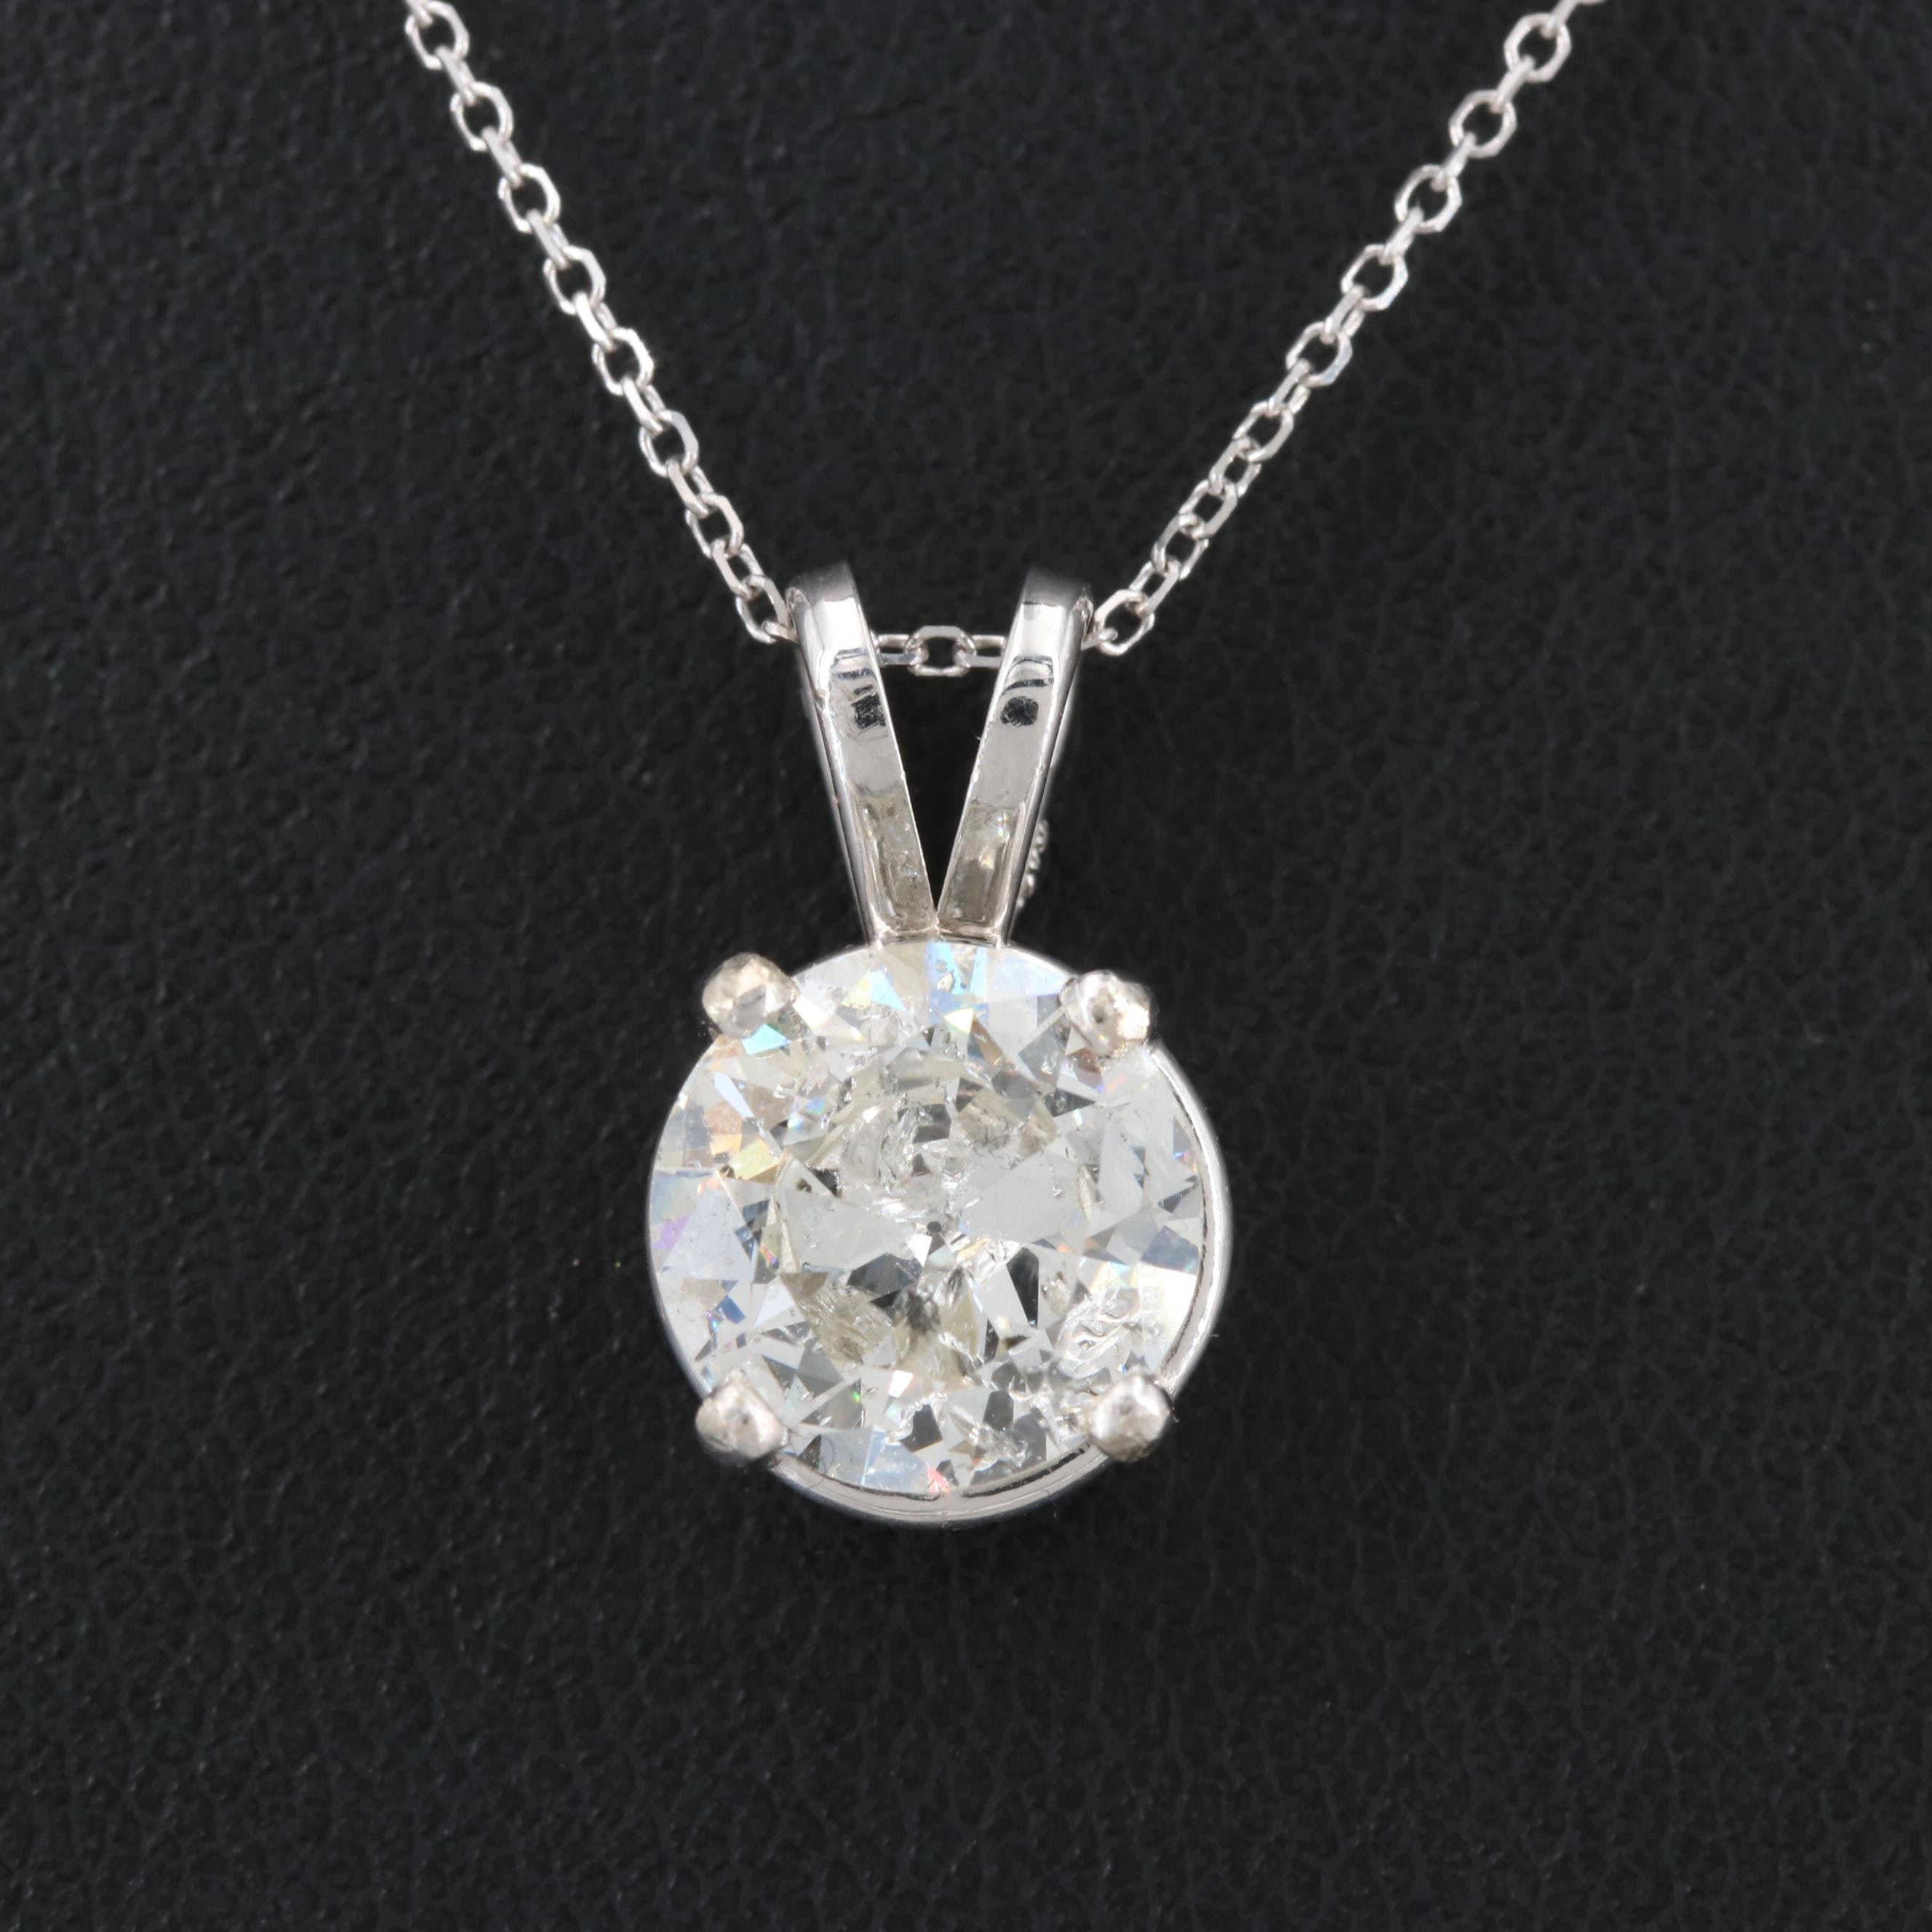 14K White Gold 1.70 CT Diamond Pendant Necklace